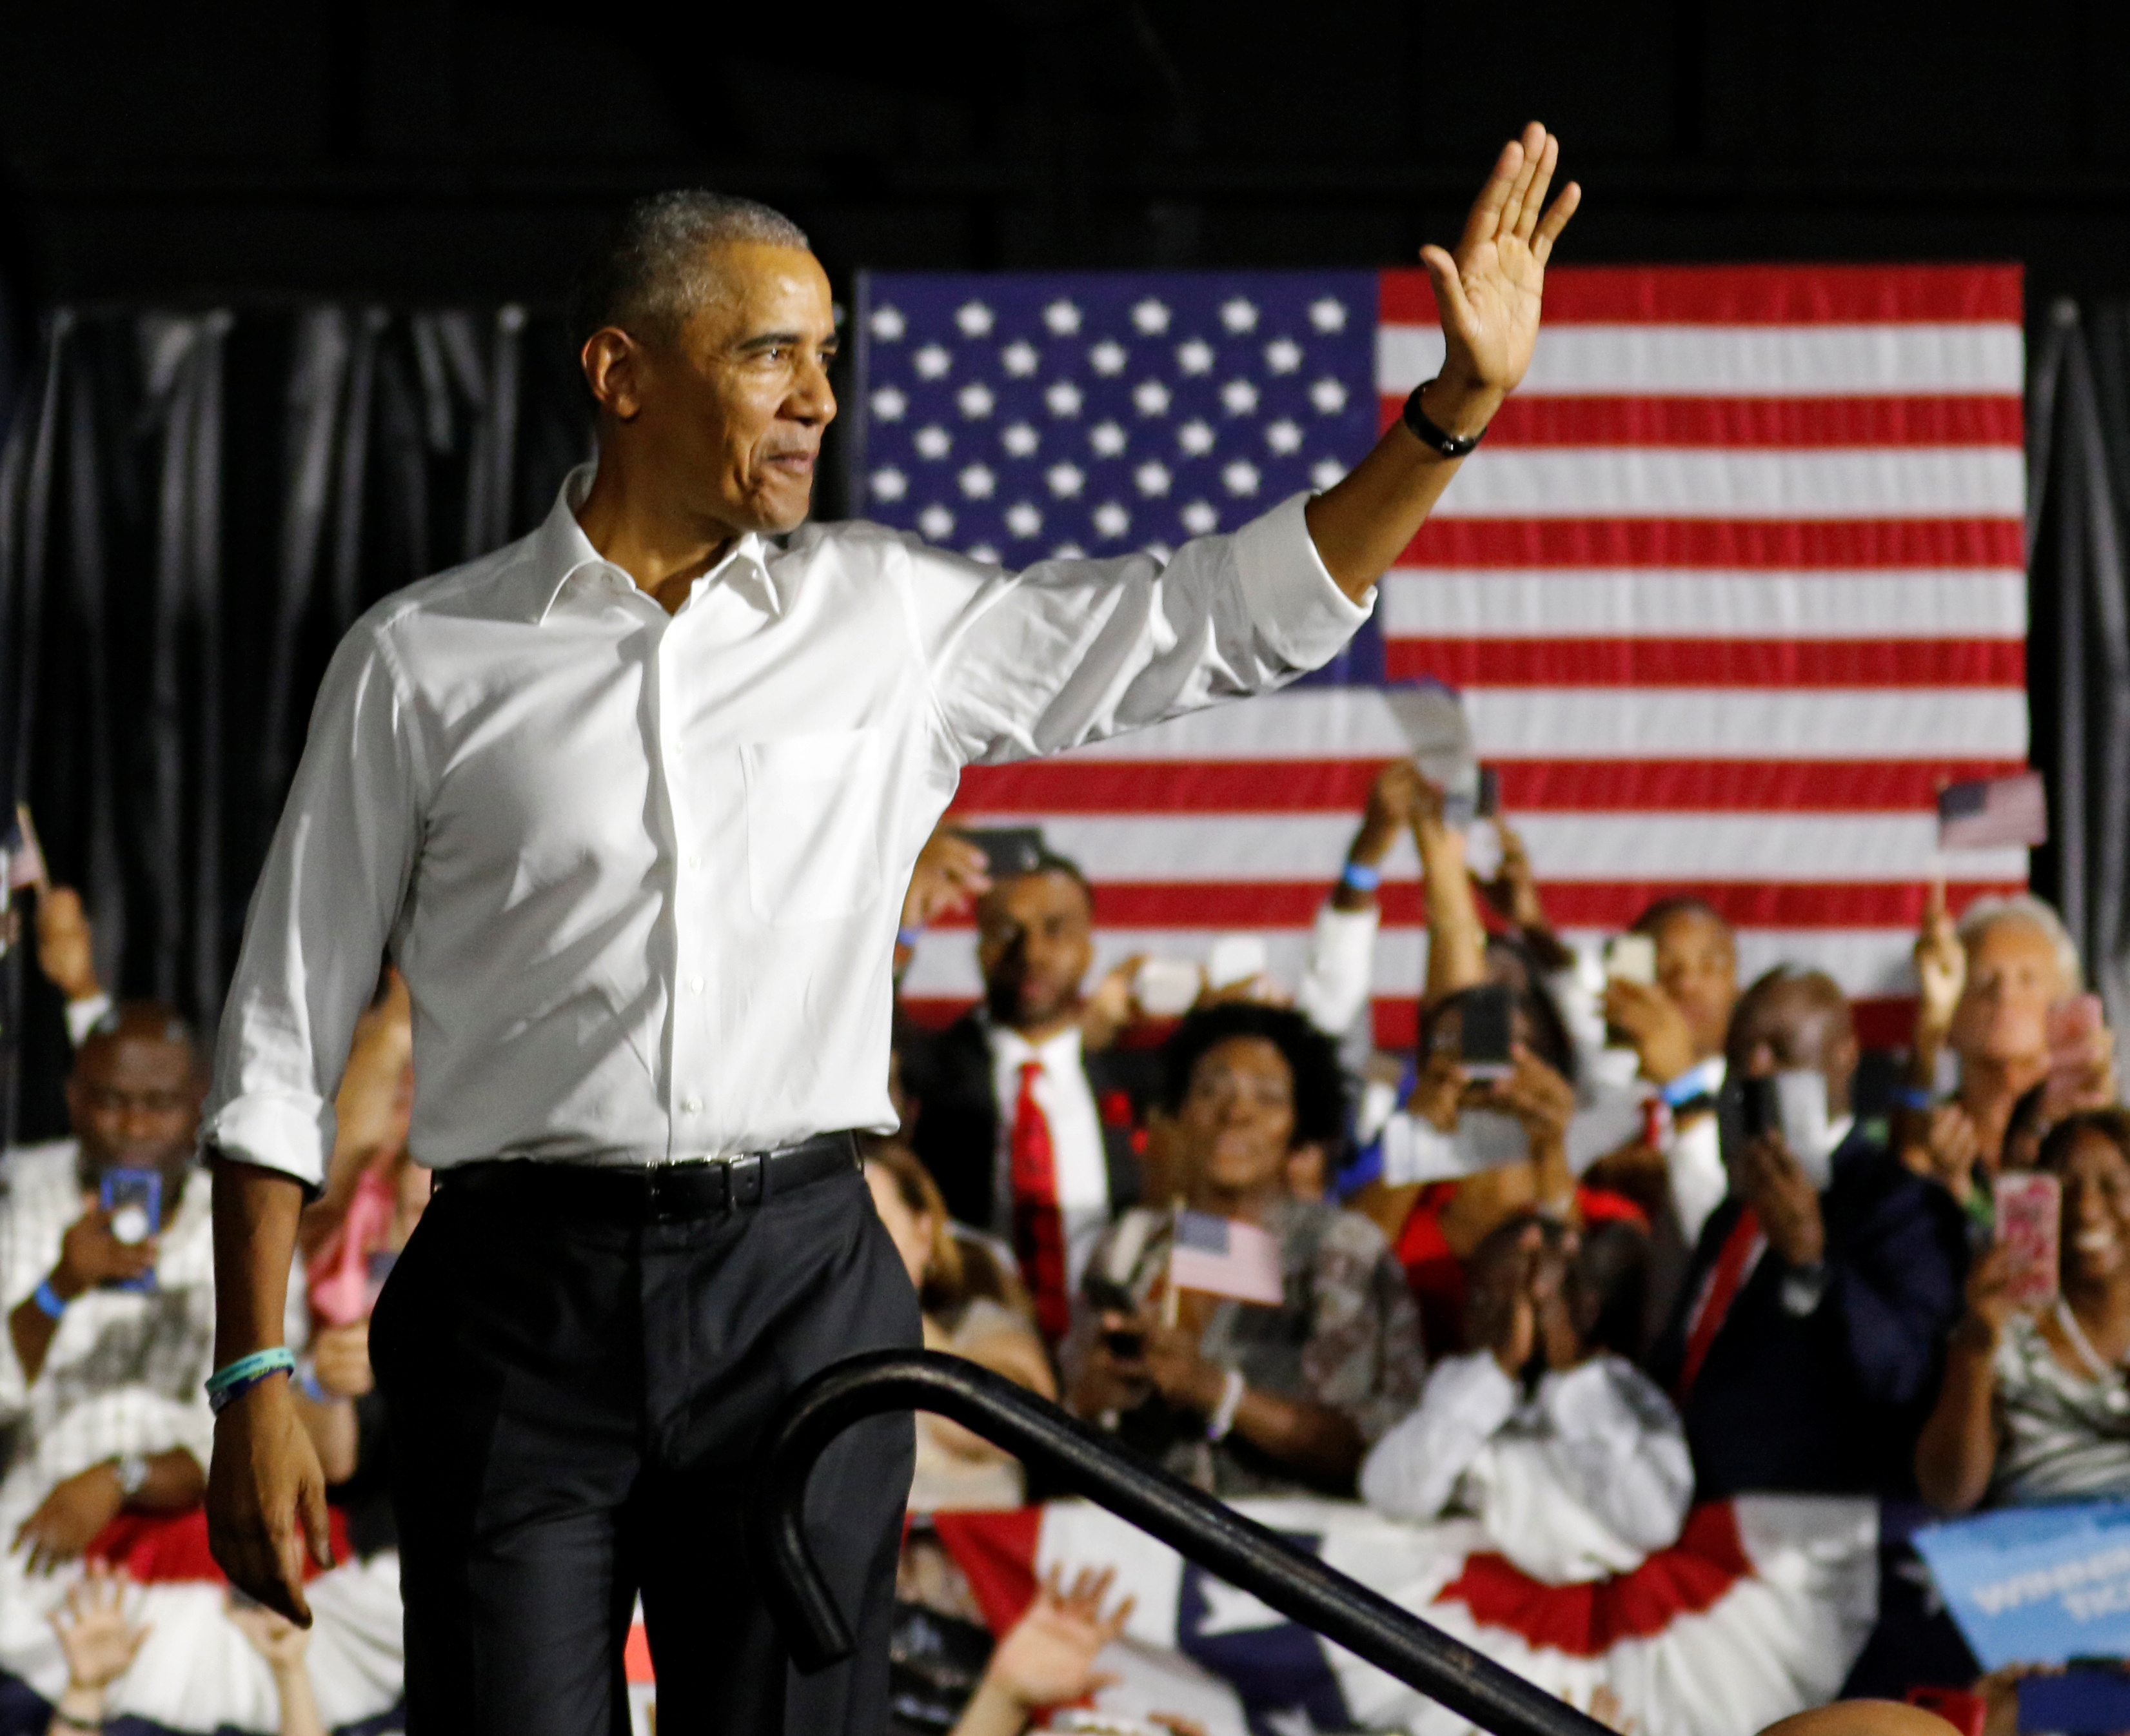 Obama campaigns for Democrats in Miami